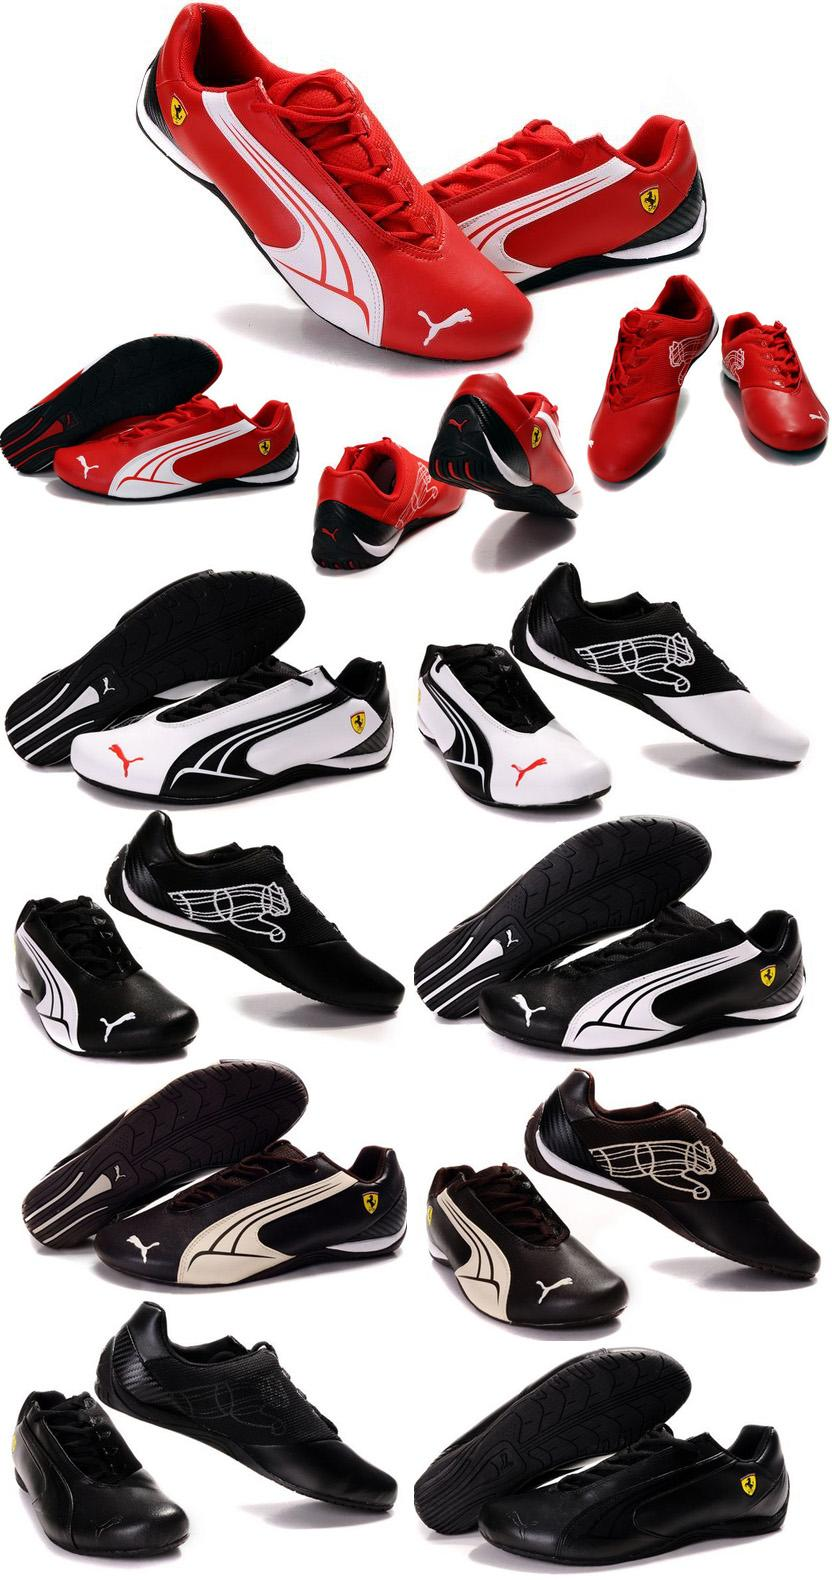 casual racing shoes images